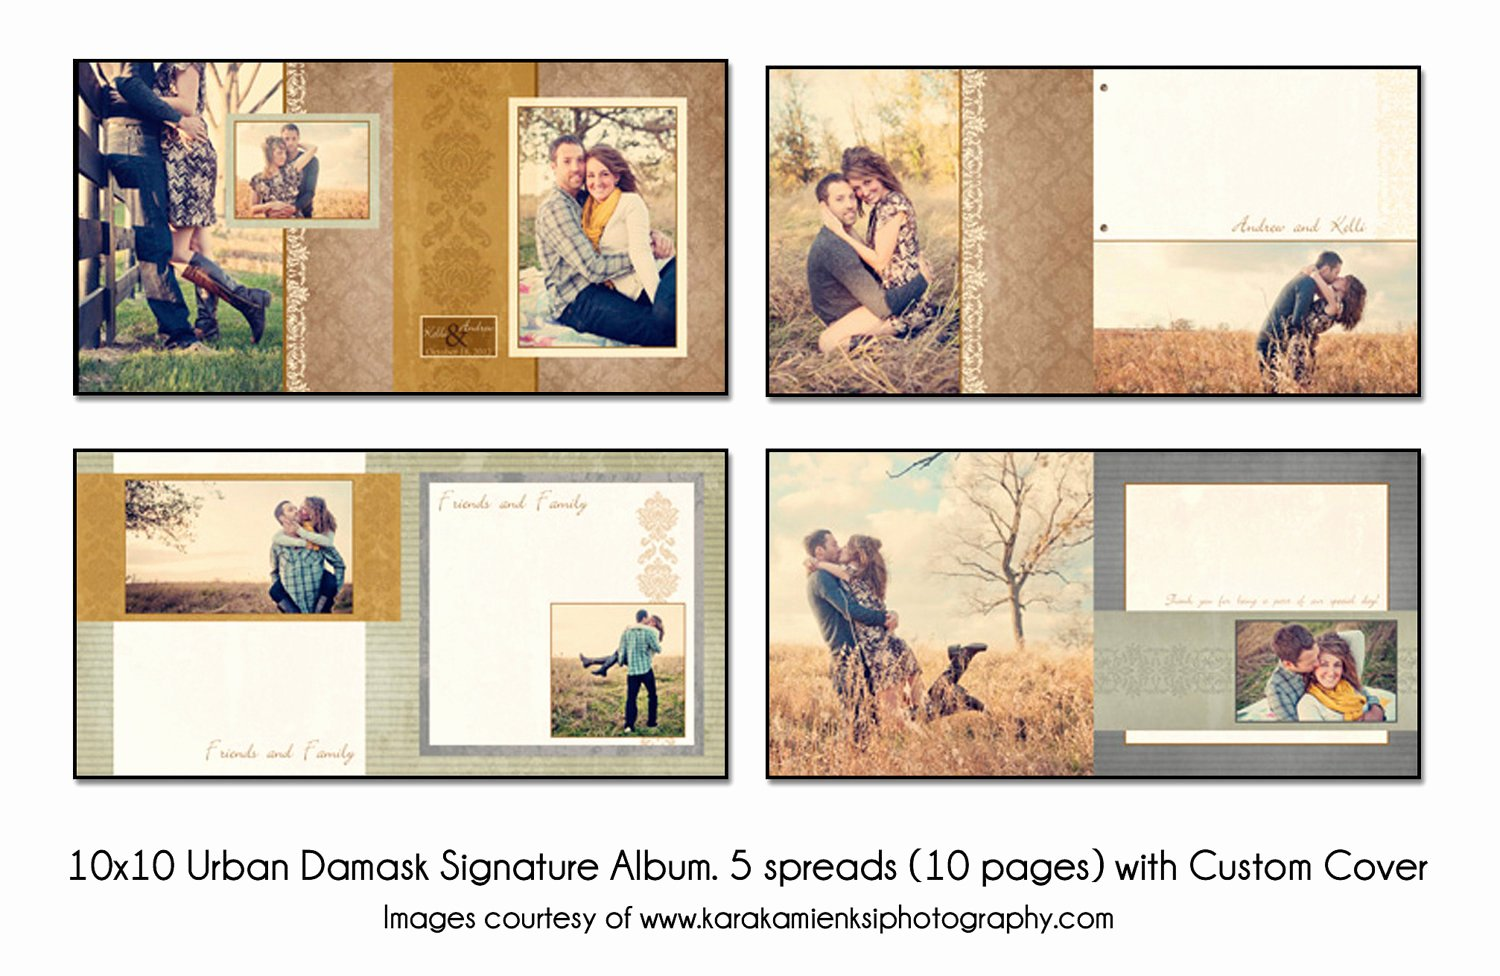 Free Photo Album Template Lovely Urban Damask 10x10 Digital Wedding Guest Book Template 5